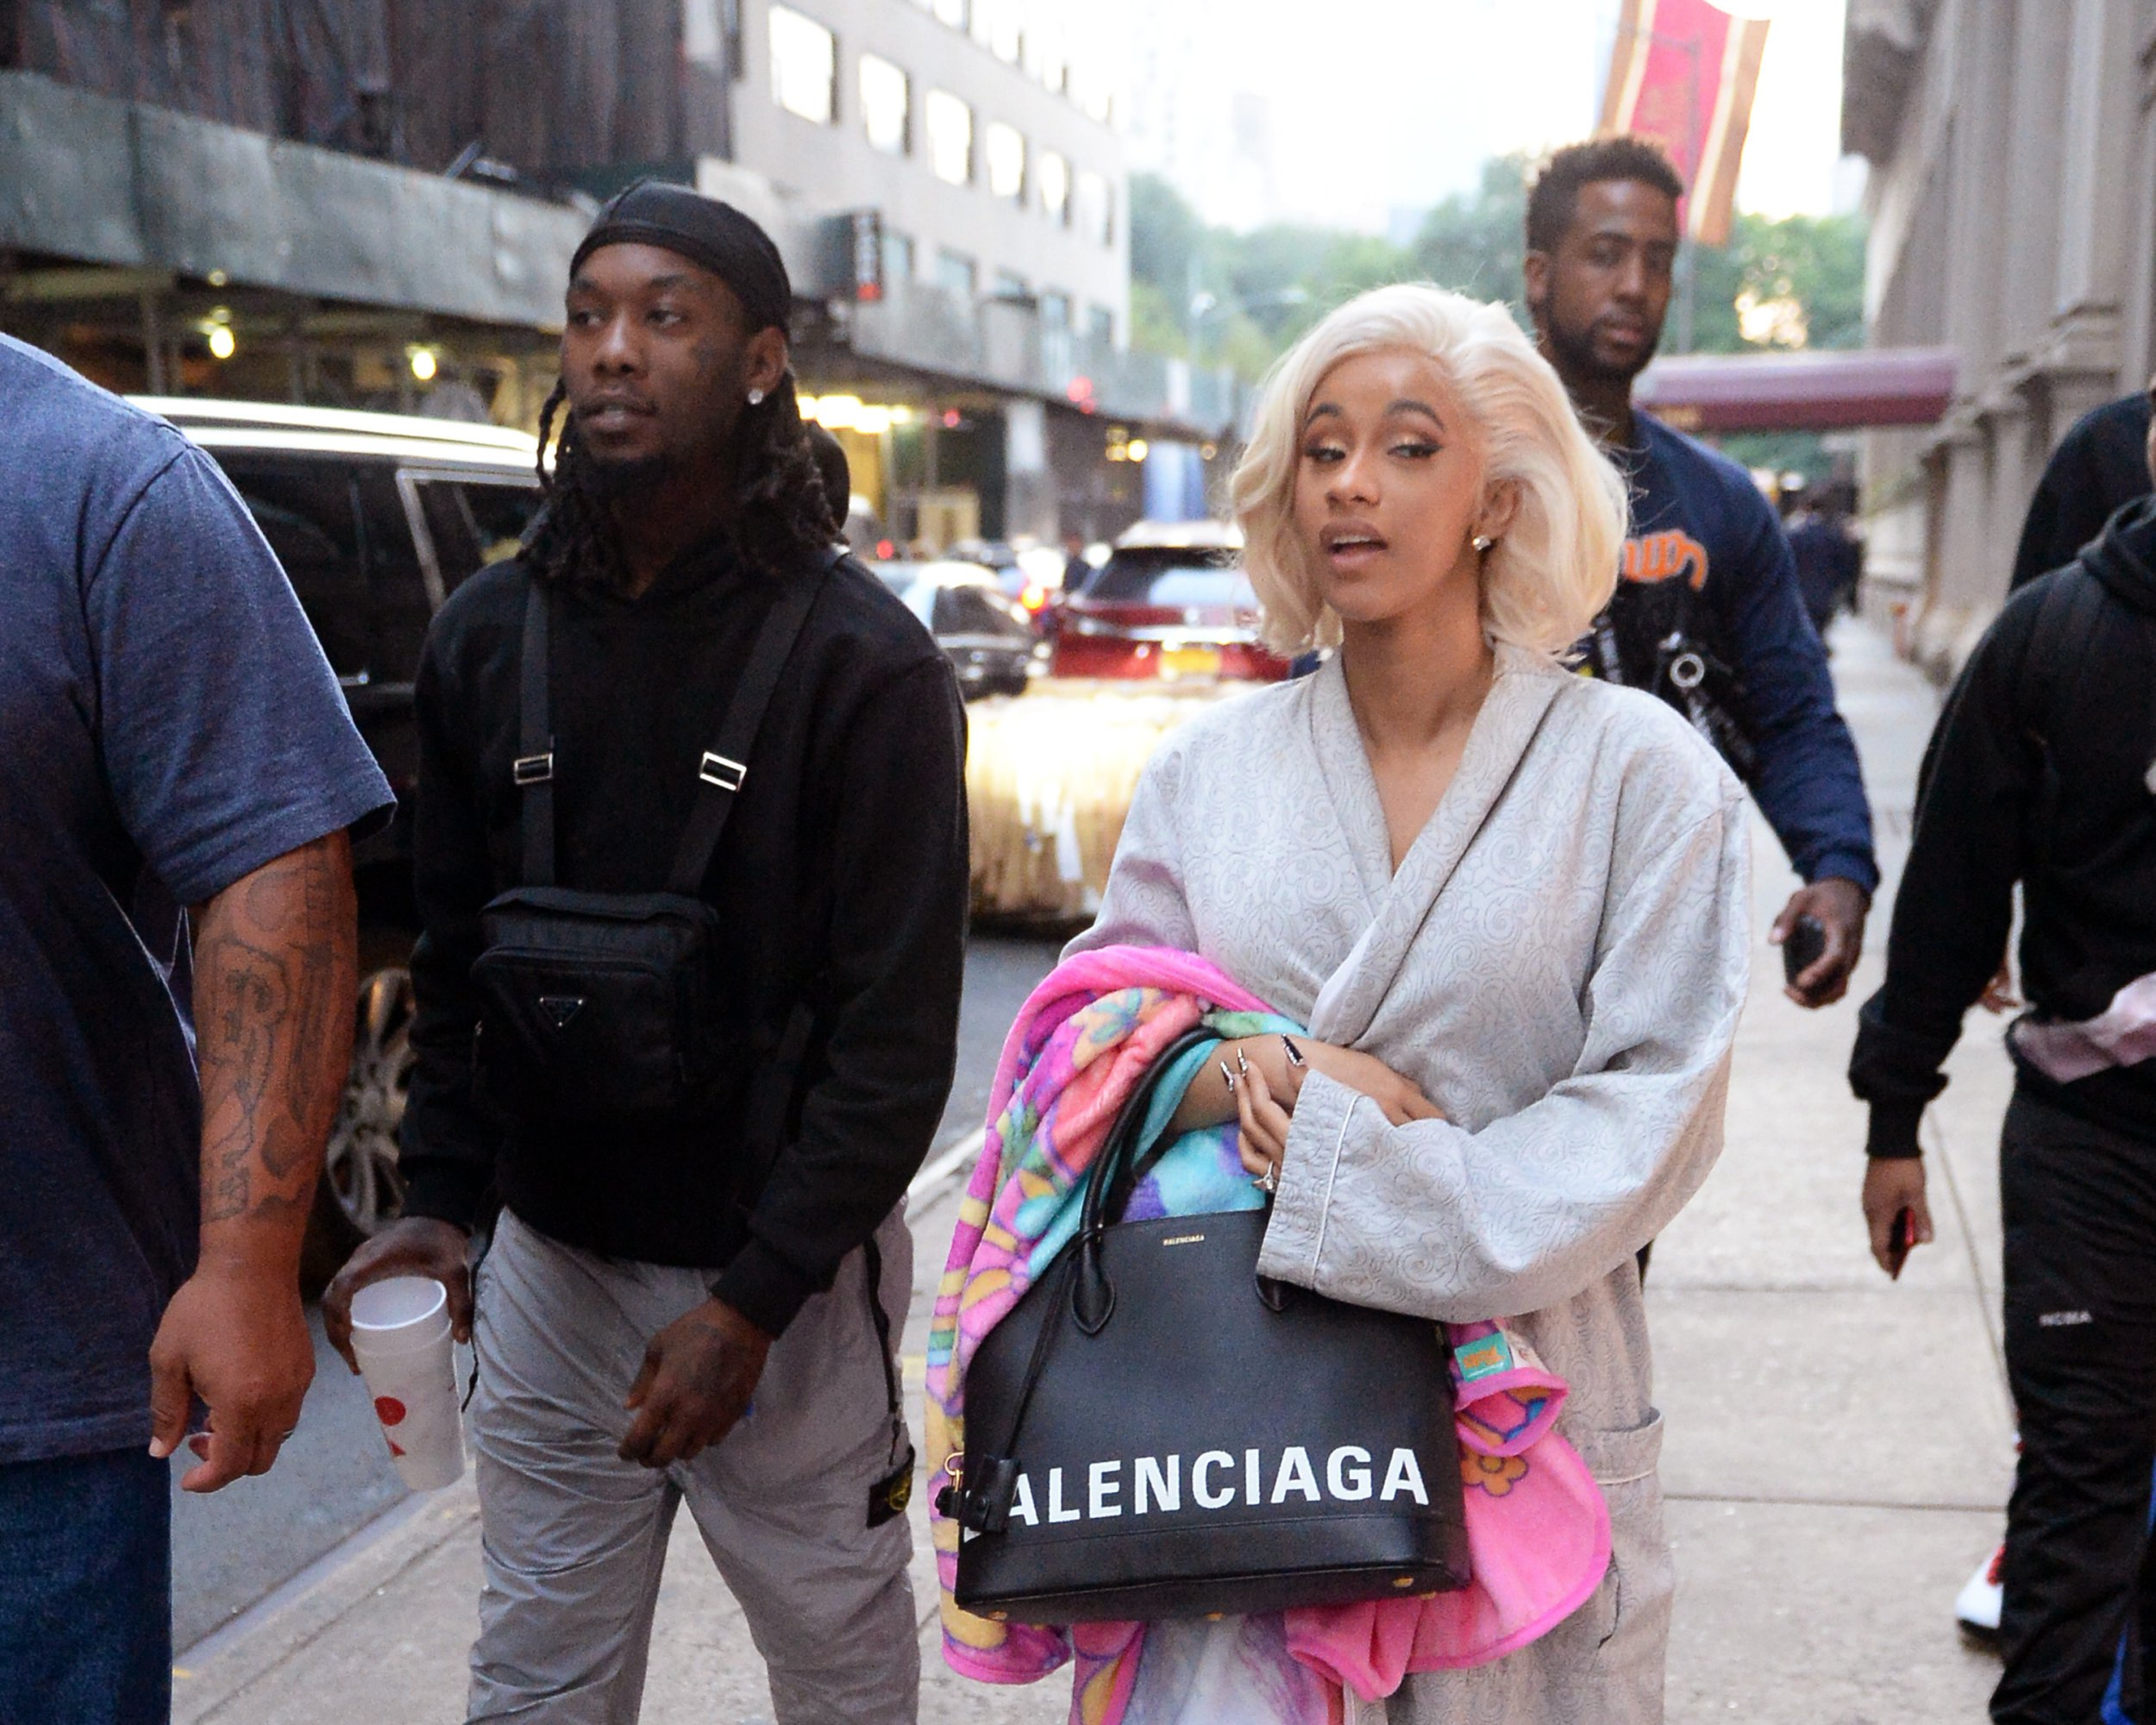 Cardi B and her husband Offset are photographed shopping at Barney's tonight in New York City just hours after Cardi B turned herself in to police. The rapper allegedly ordered an attack on two bartenders at Angels strip club in queens New York, because she believed one of the woman had slept with her husband, Offset. Pictured: Cardi B,Offset Ref: SPL5029760 011018 NON-EXCLUSIVE Picture by: Elder Ordonez / SplashNews.com Splash News and Pictures Los Angeles: 310-821-2666 New York: 212-619-2666 London: 0207 644 7656 Milan: +39 02 4399 8577 Sydney: +61 02 9240 7700 photodesk@splashnews.com World Rights, No Portugal Rights